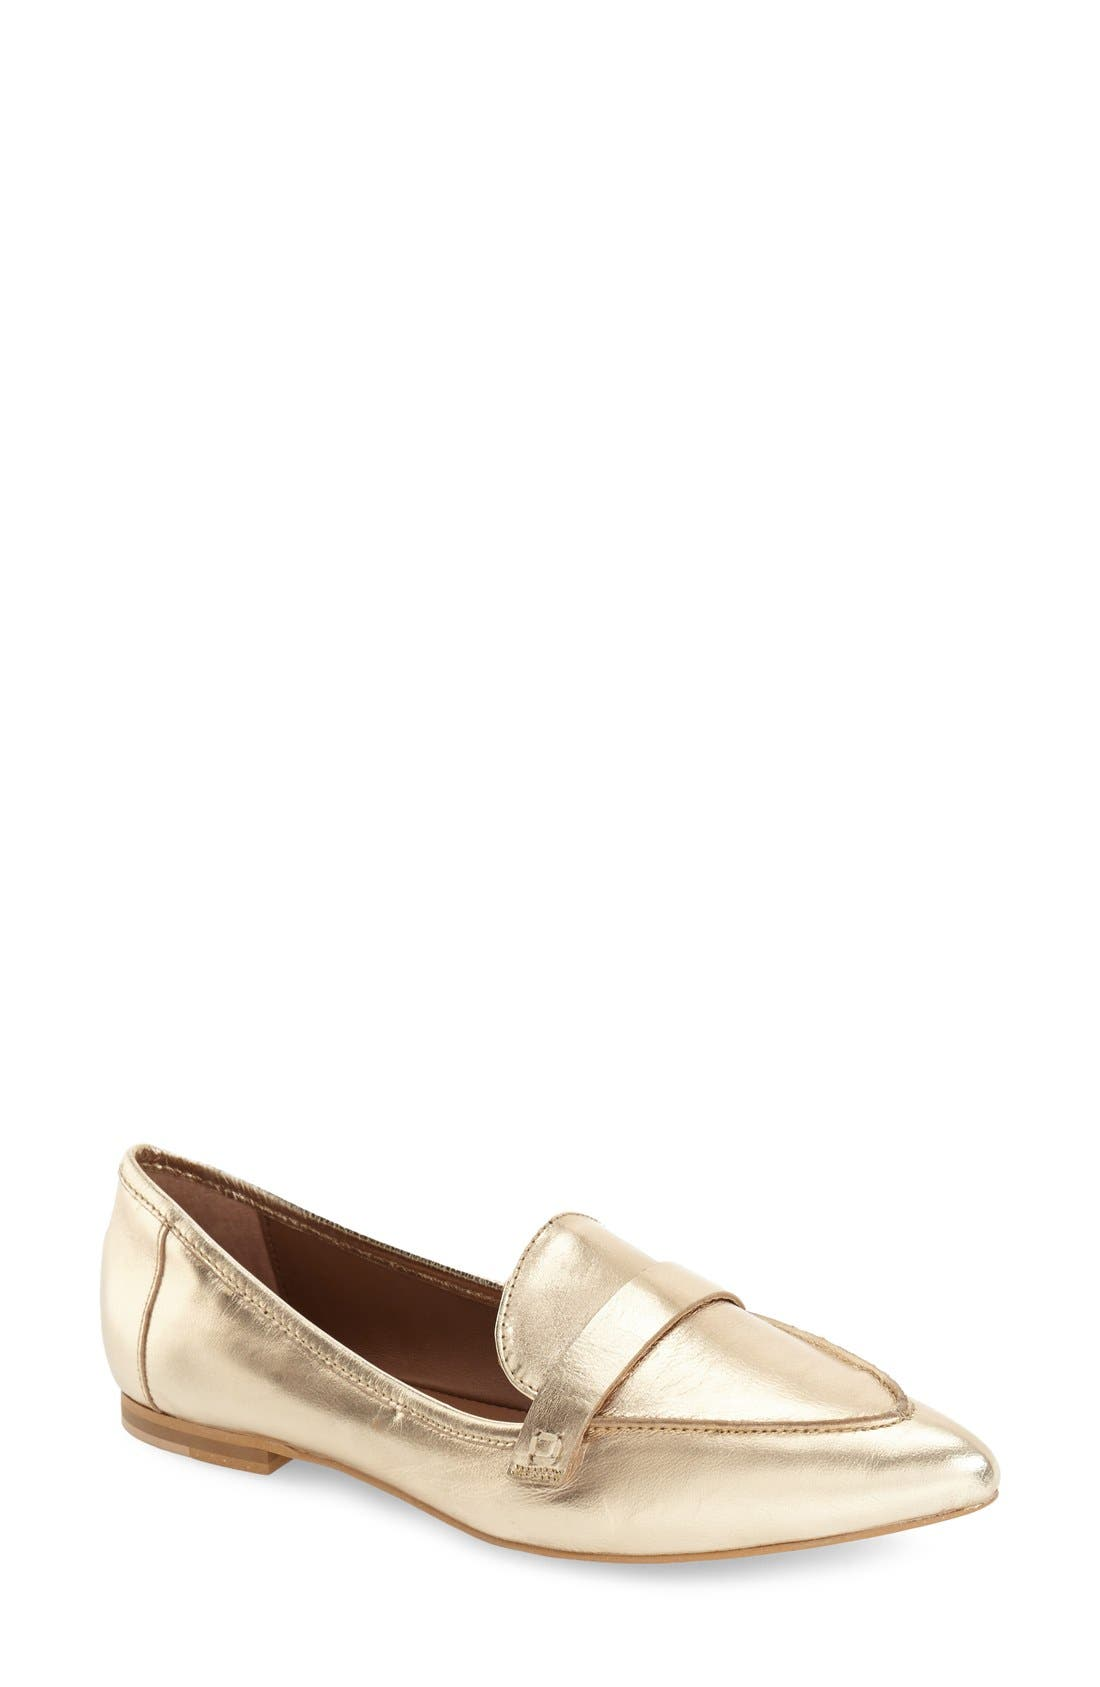 Alternate Image 1 Selected - Topshop Kimi Loafer (Women)